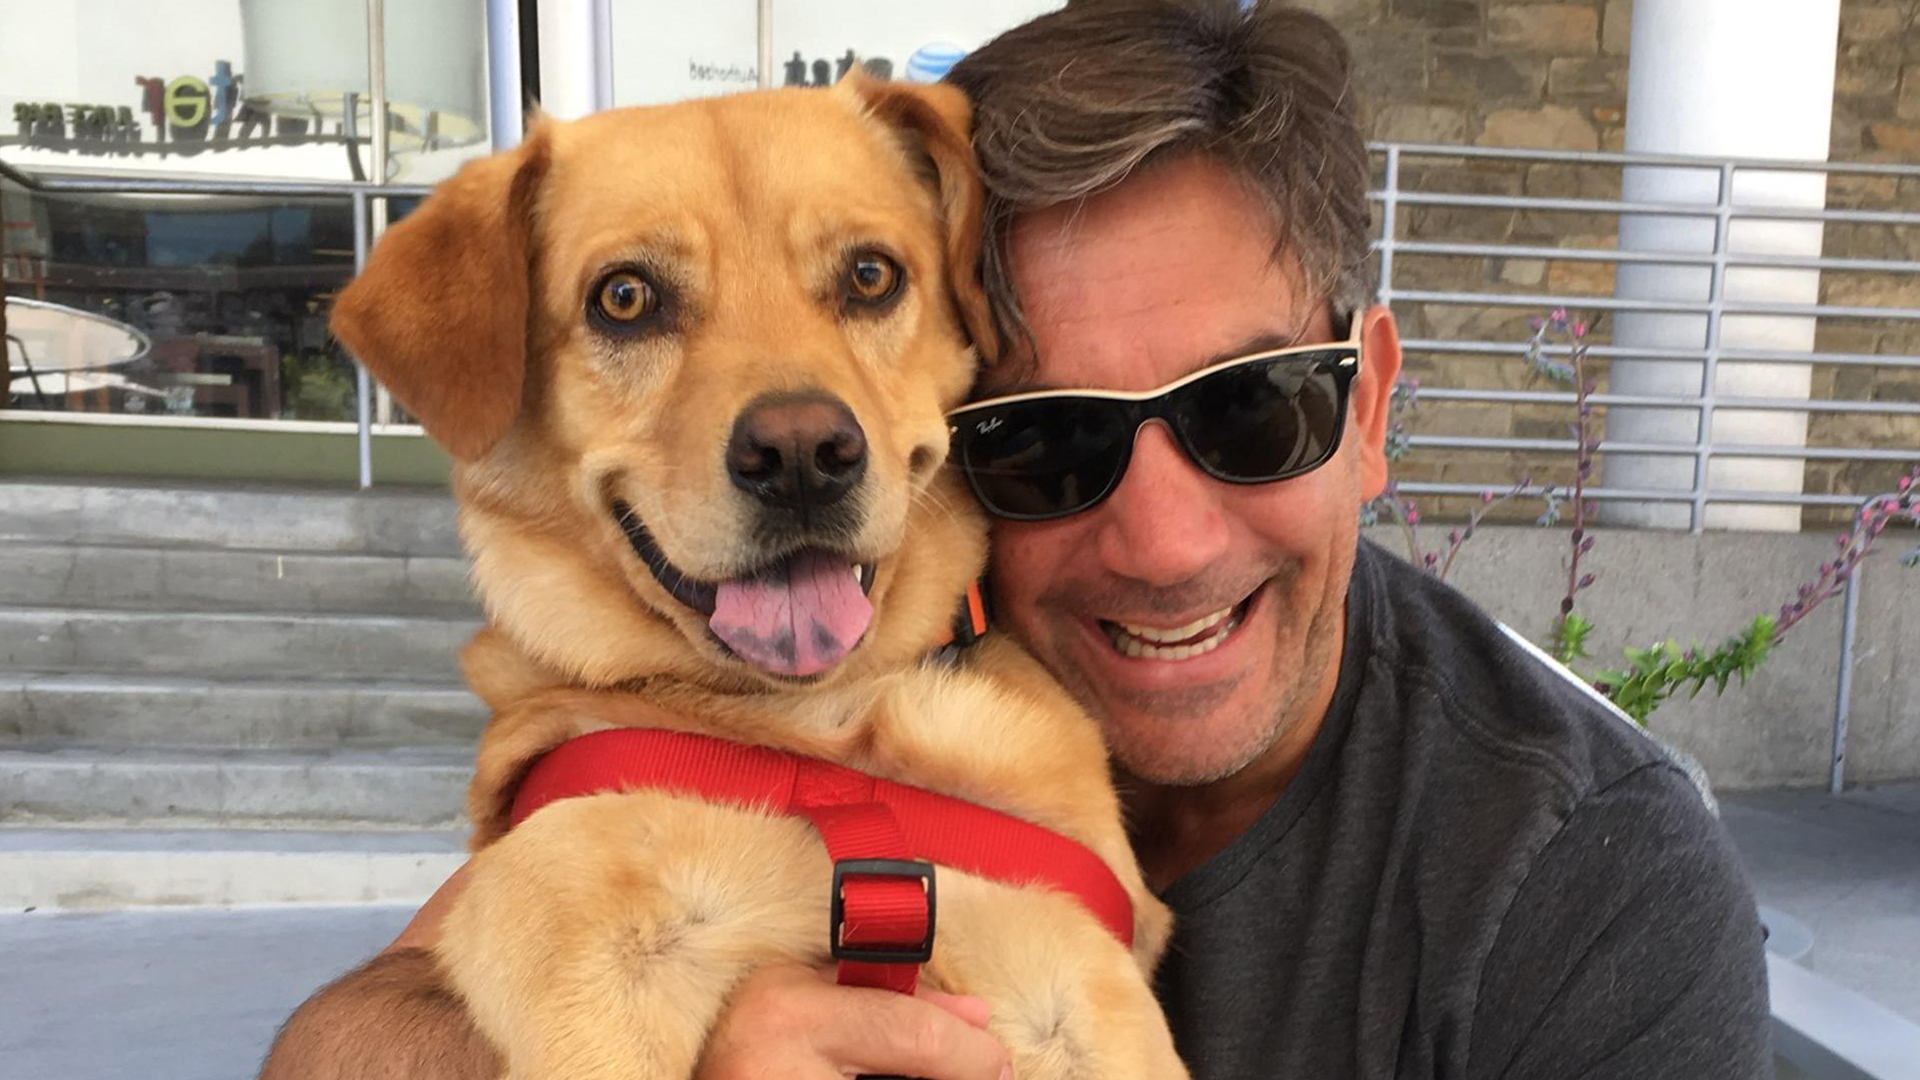 Gabriel Crispo, 49, is seen with his dog in an undated photo provided to KTLA by friends.